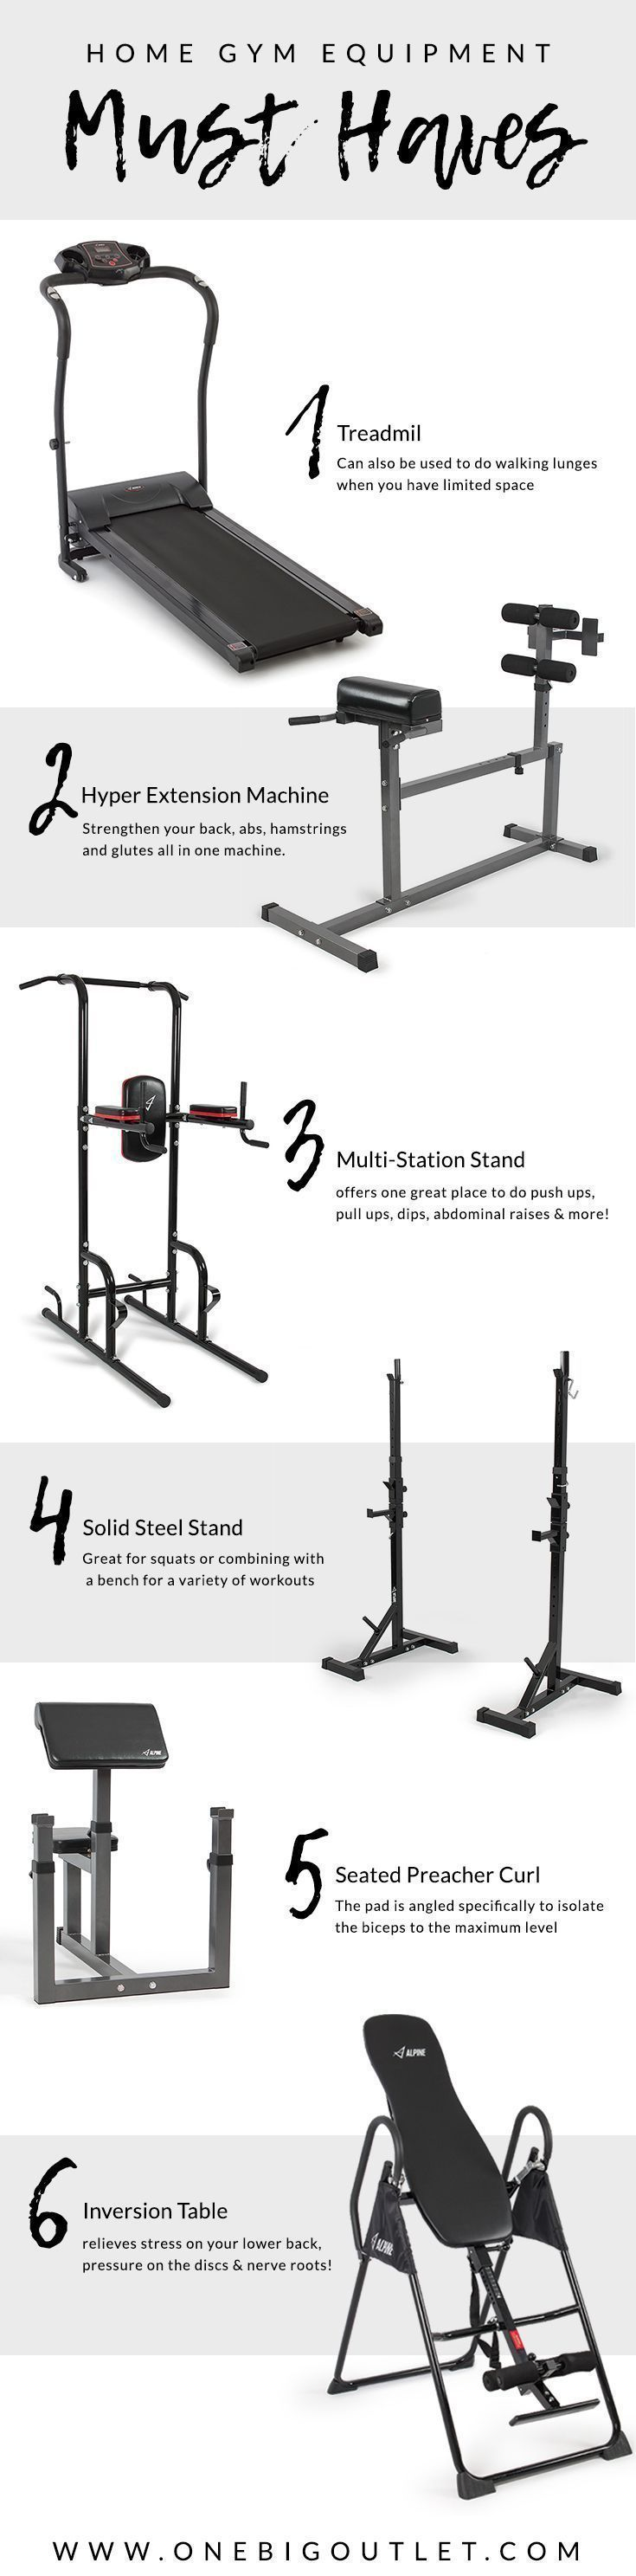 Top home gym equipment must haves! treadmill, hyper extension, multi-station stand, steel stand, seated preacher curl & inversion table! Multiple ways to use each machine #InversionTables